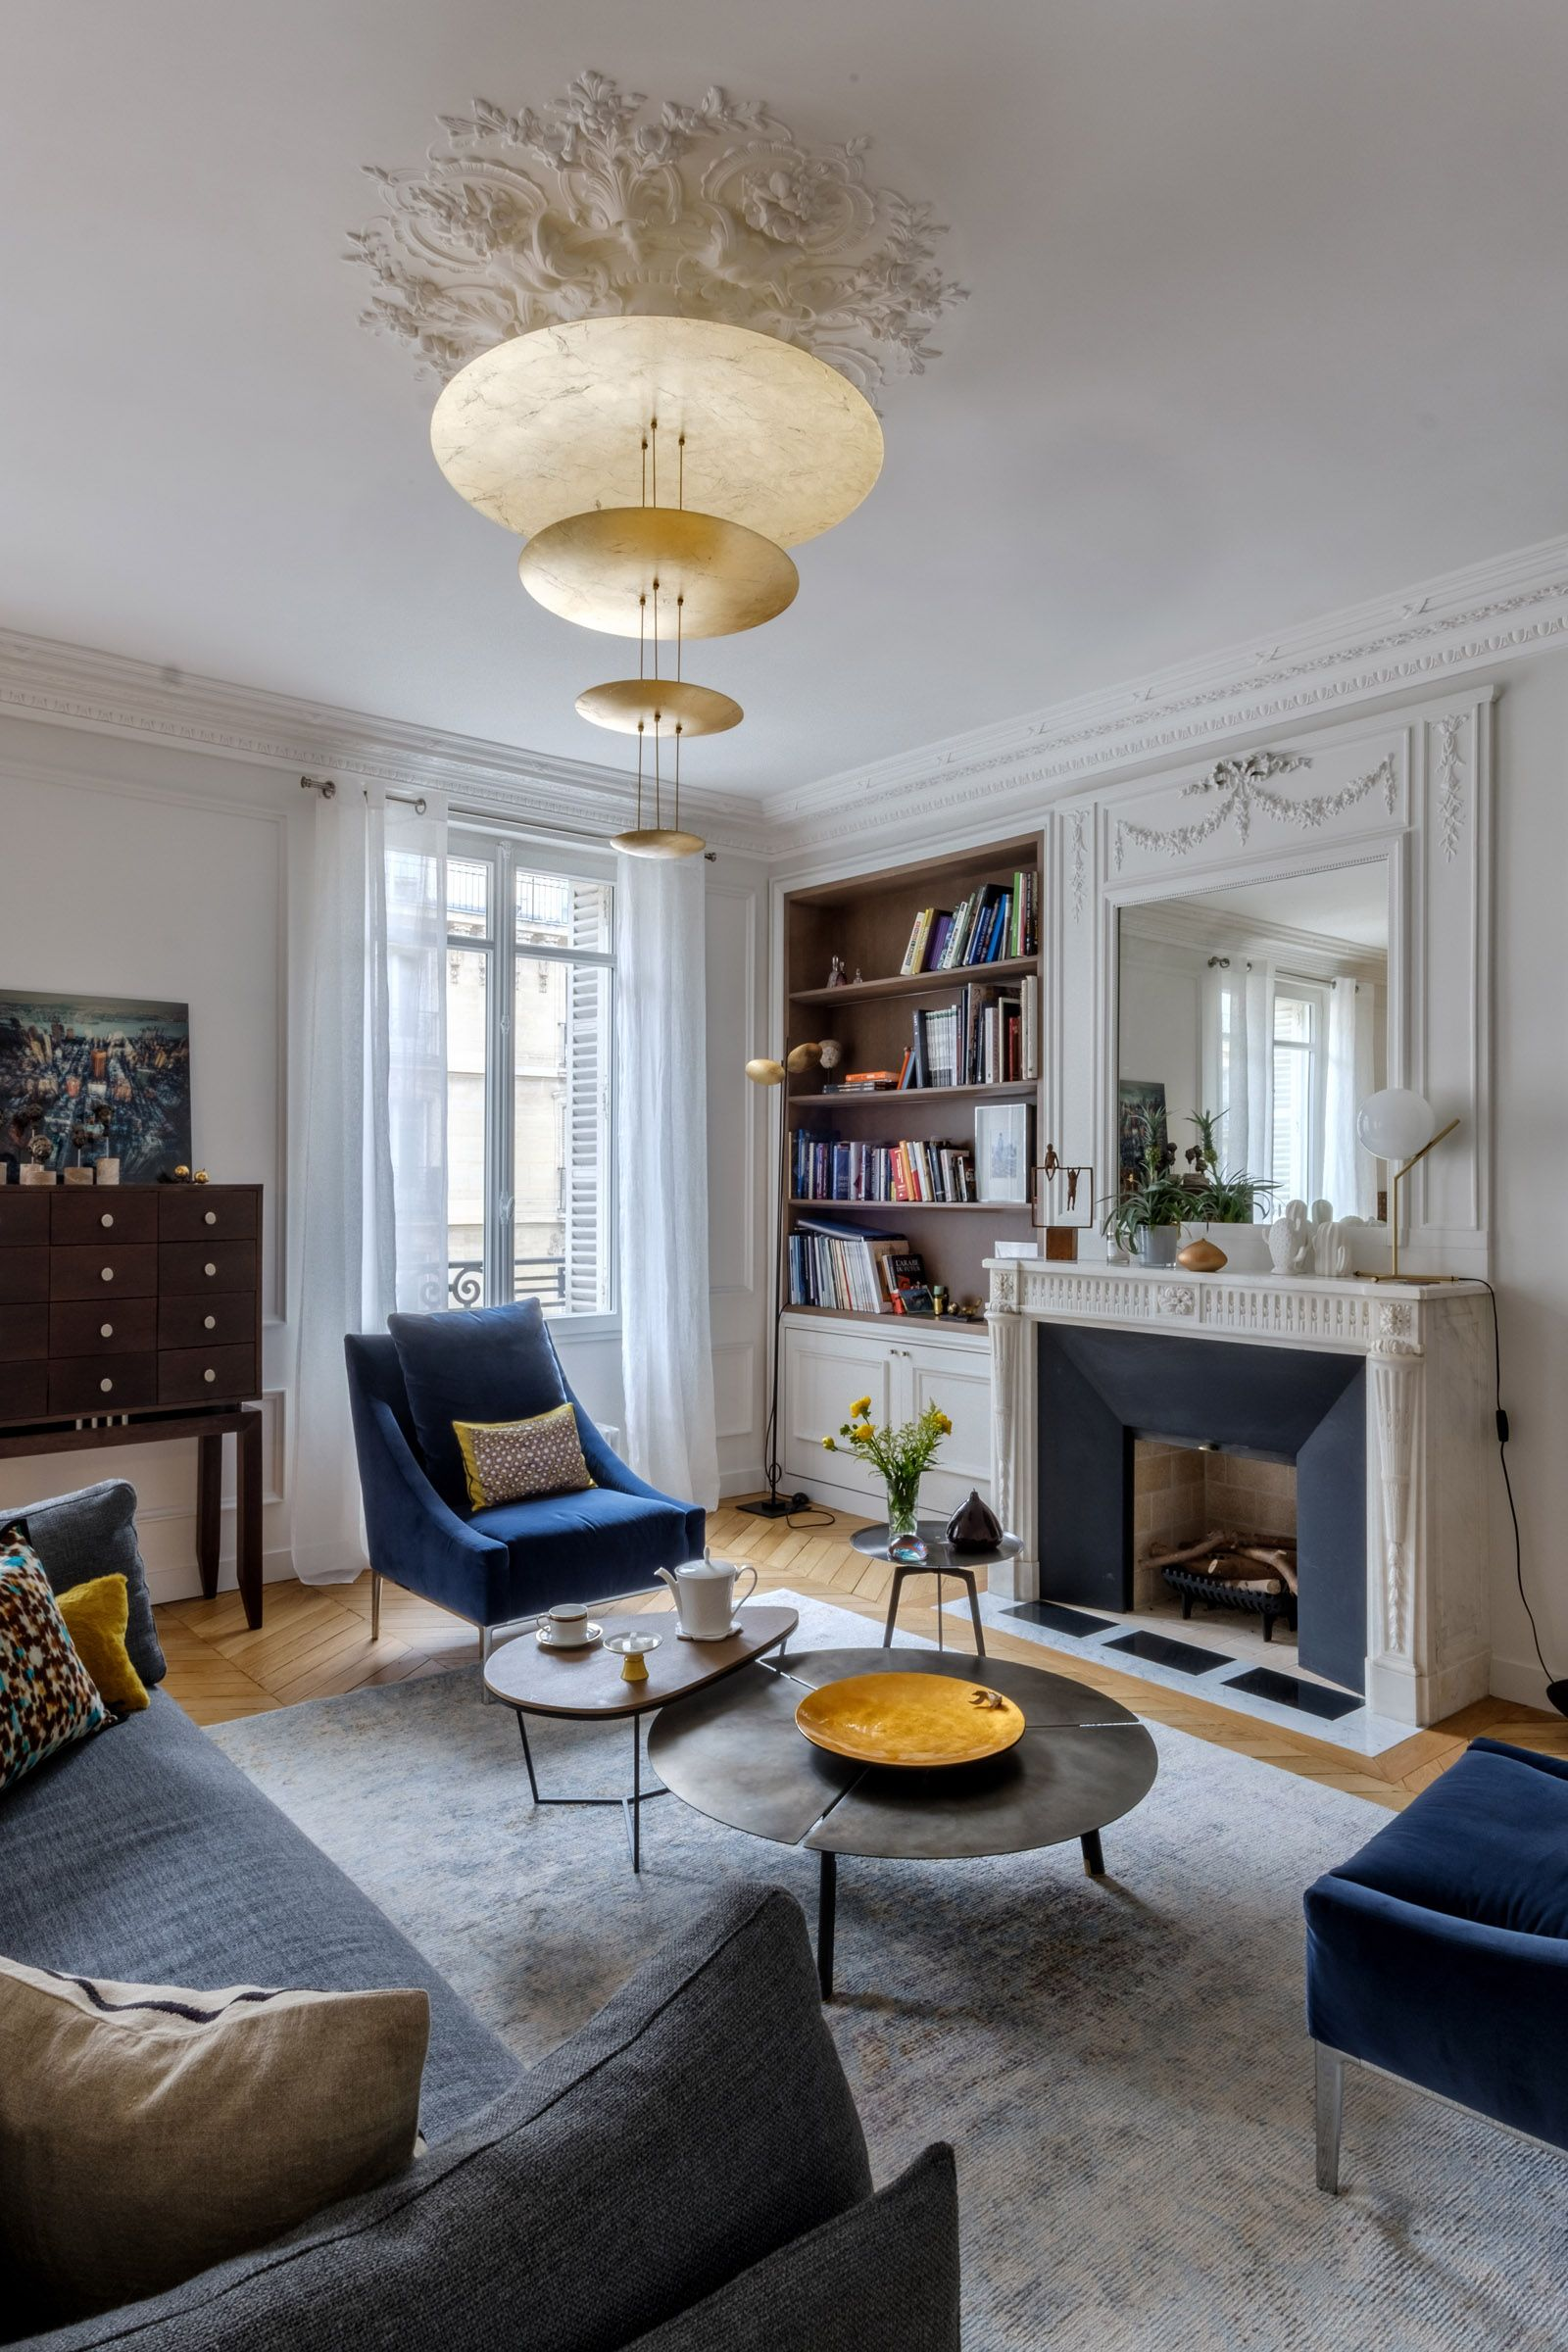 Appartement du vi me arrondissement par v ronique cotrel for Maison deco paris